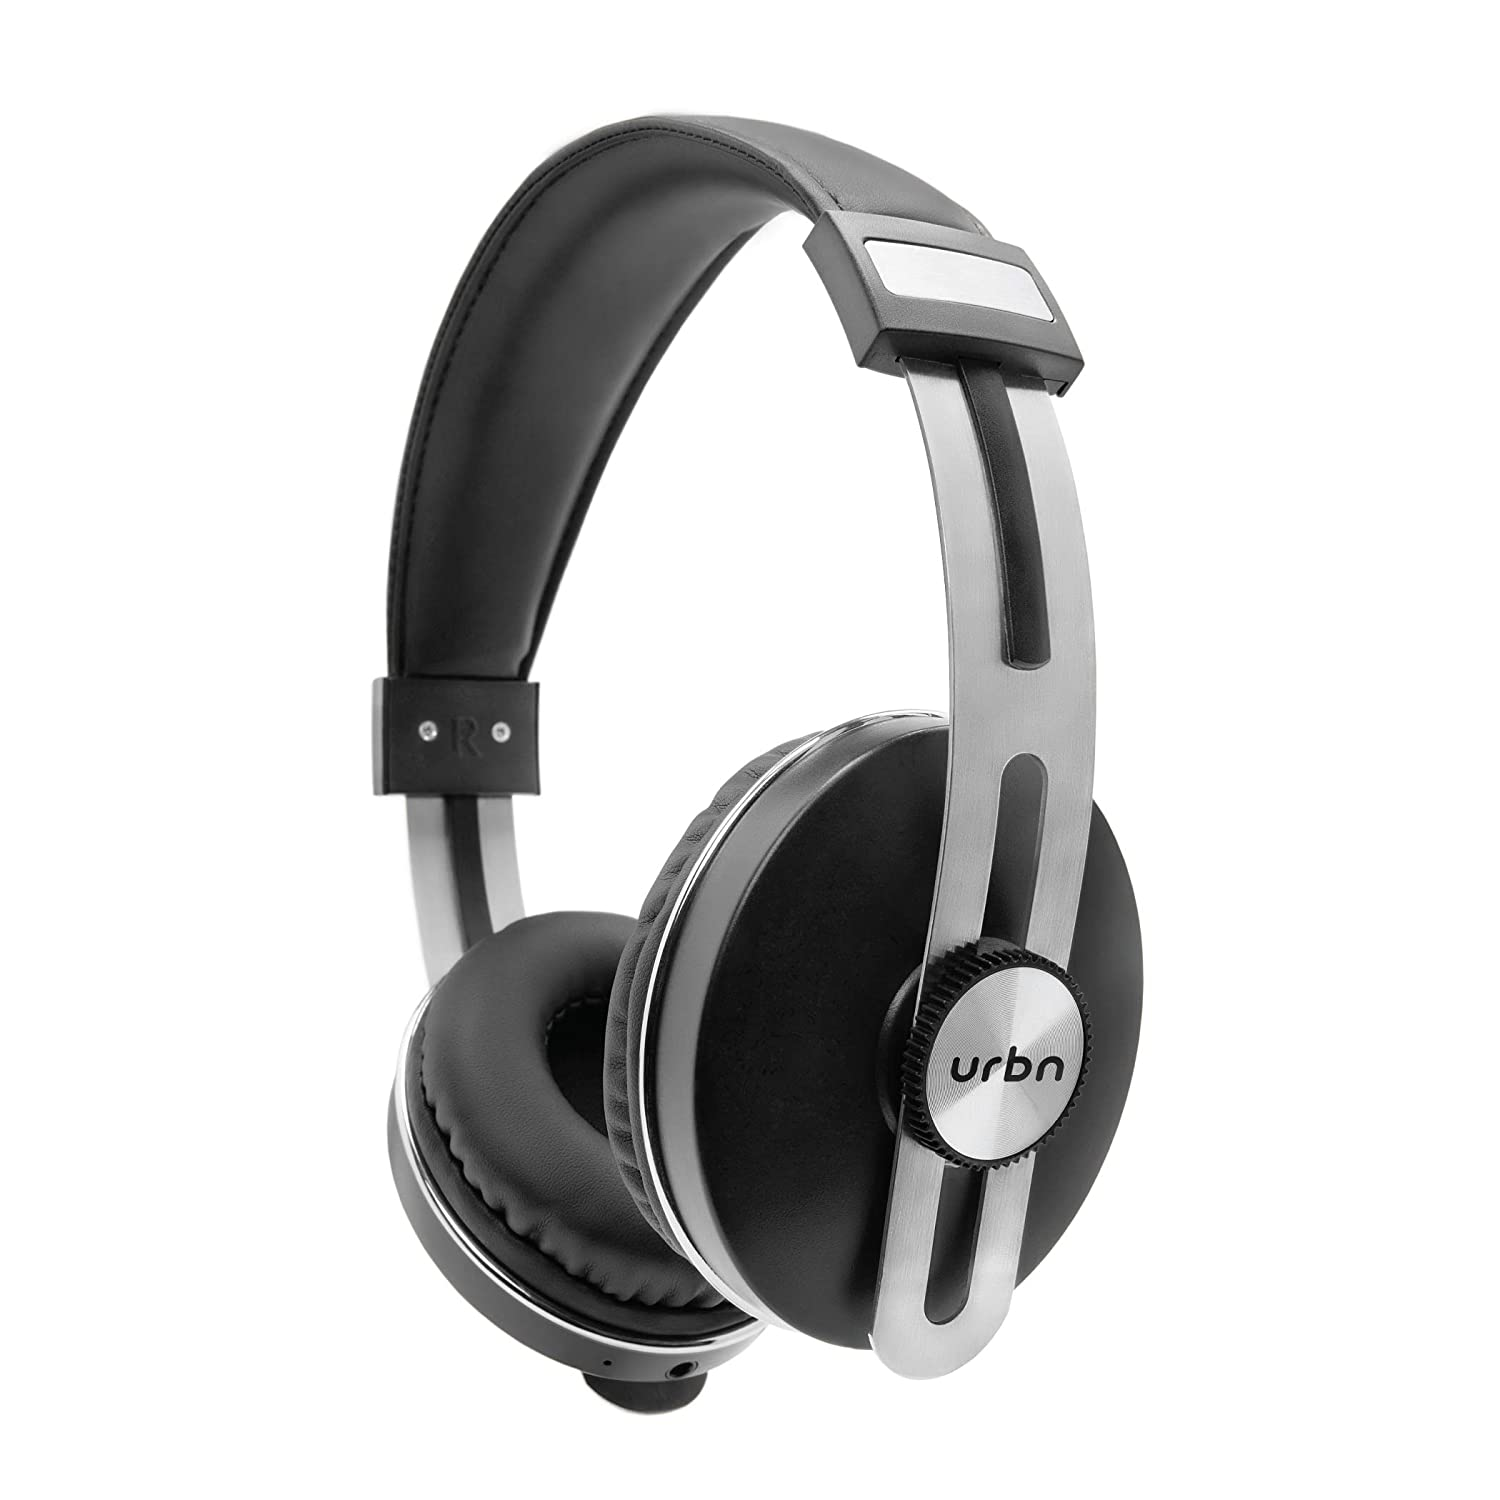 URBN Thump 500 Bluetooth Wireless Headphone with HD Sound